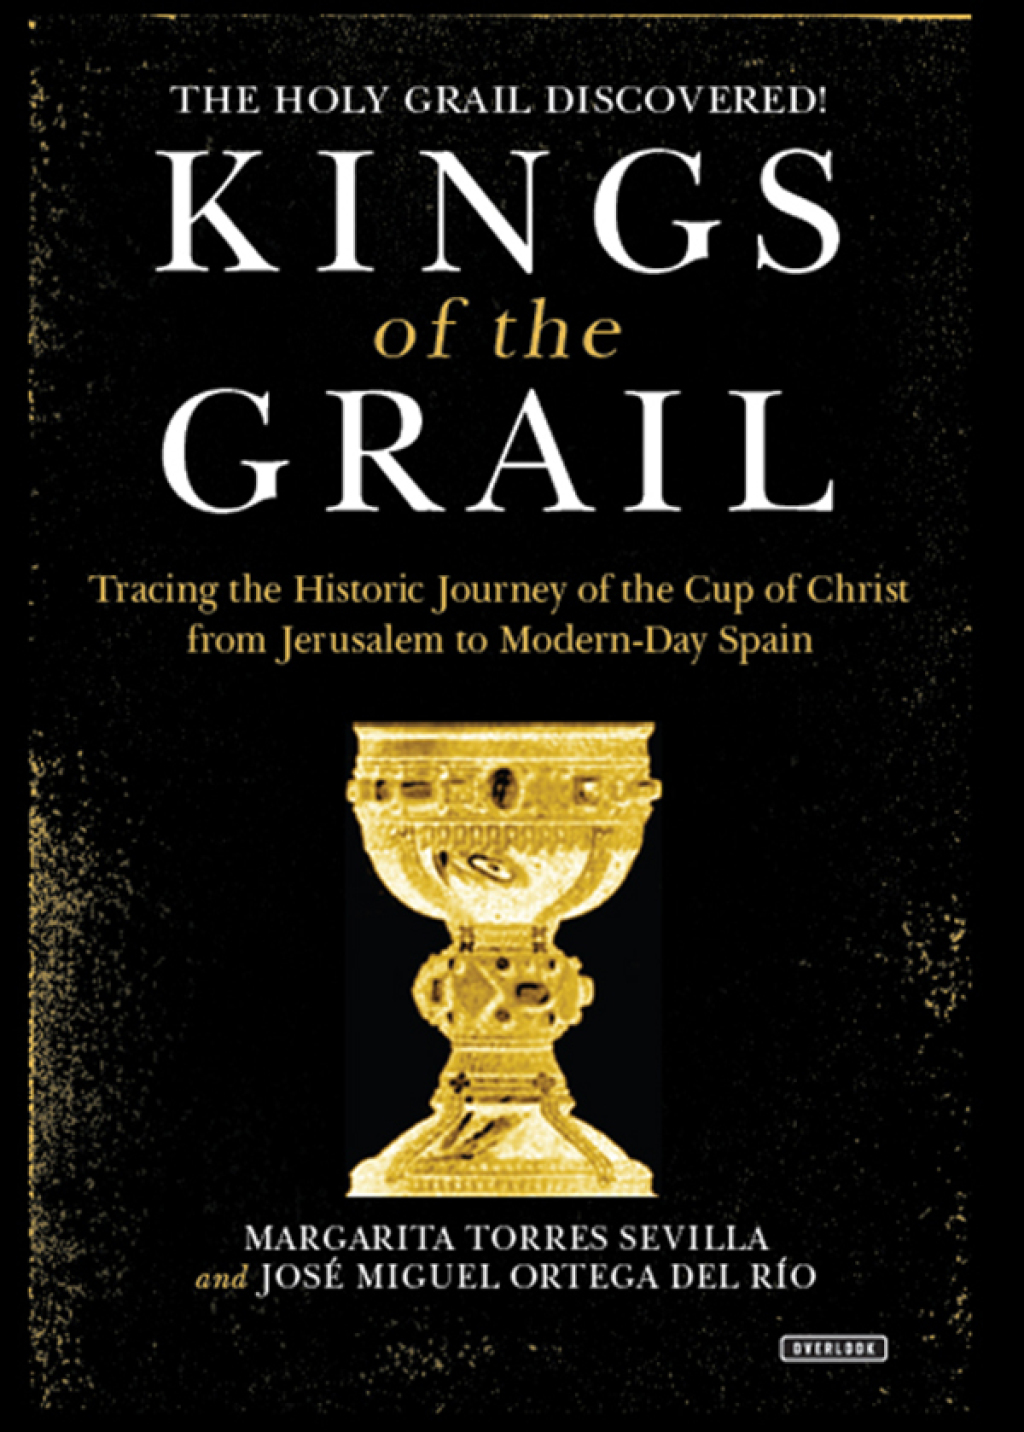 Kings of the Grail: Discovering the True Location of the Cup of Christ in Modern-Day Spain (ebook) eBooks